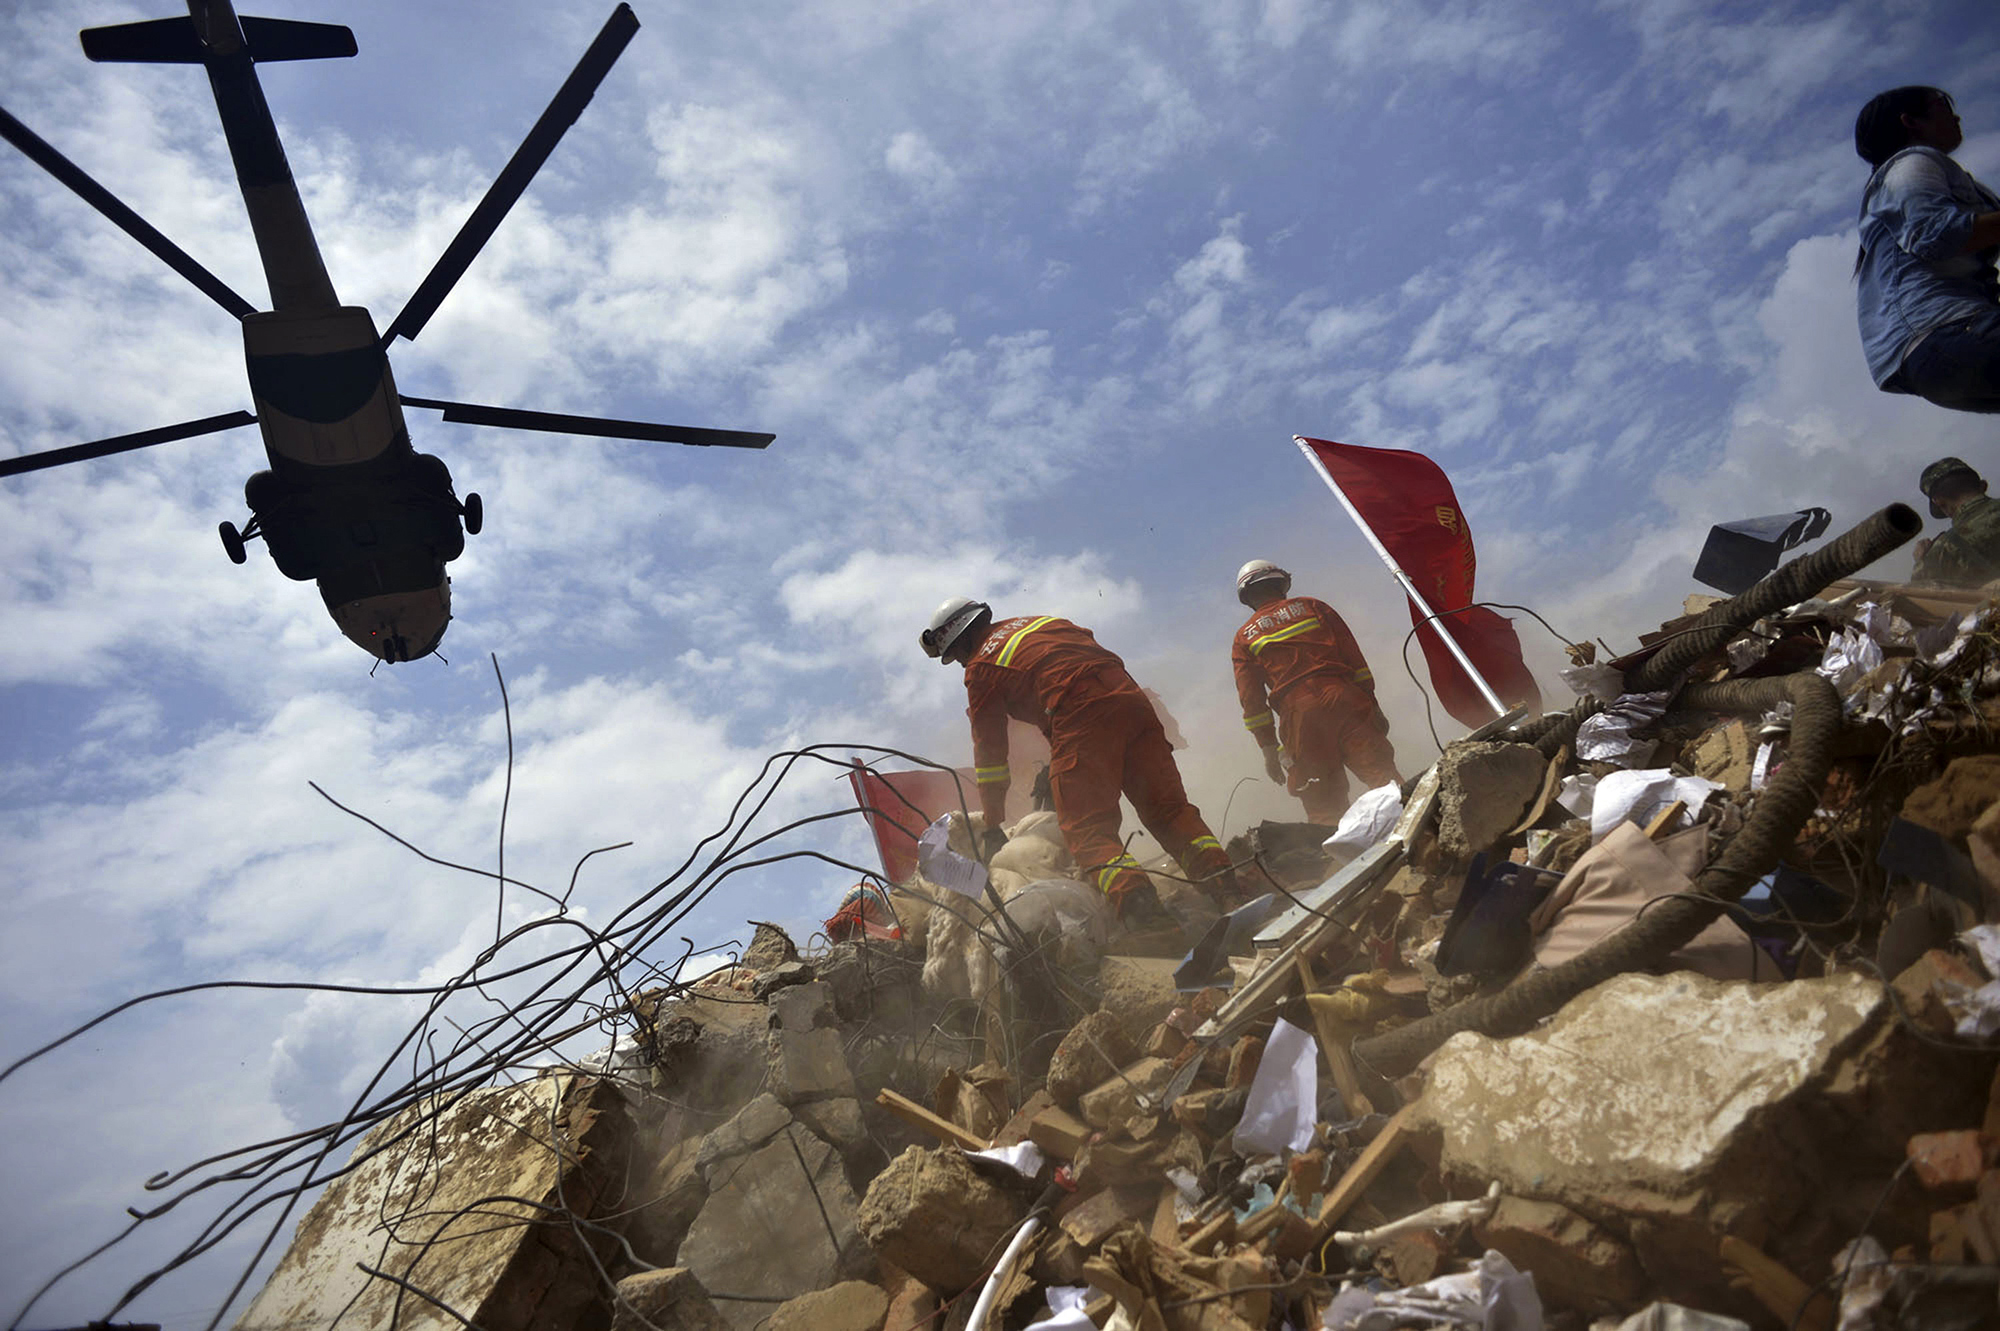 A helicopter flies over rescue workers at the epicenter of Sunday's earthquake that struck the town of Longtoushan in Ludian County in southwest China's Yunnan Province, Aug. 4, 2014.